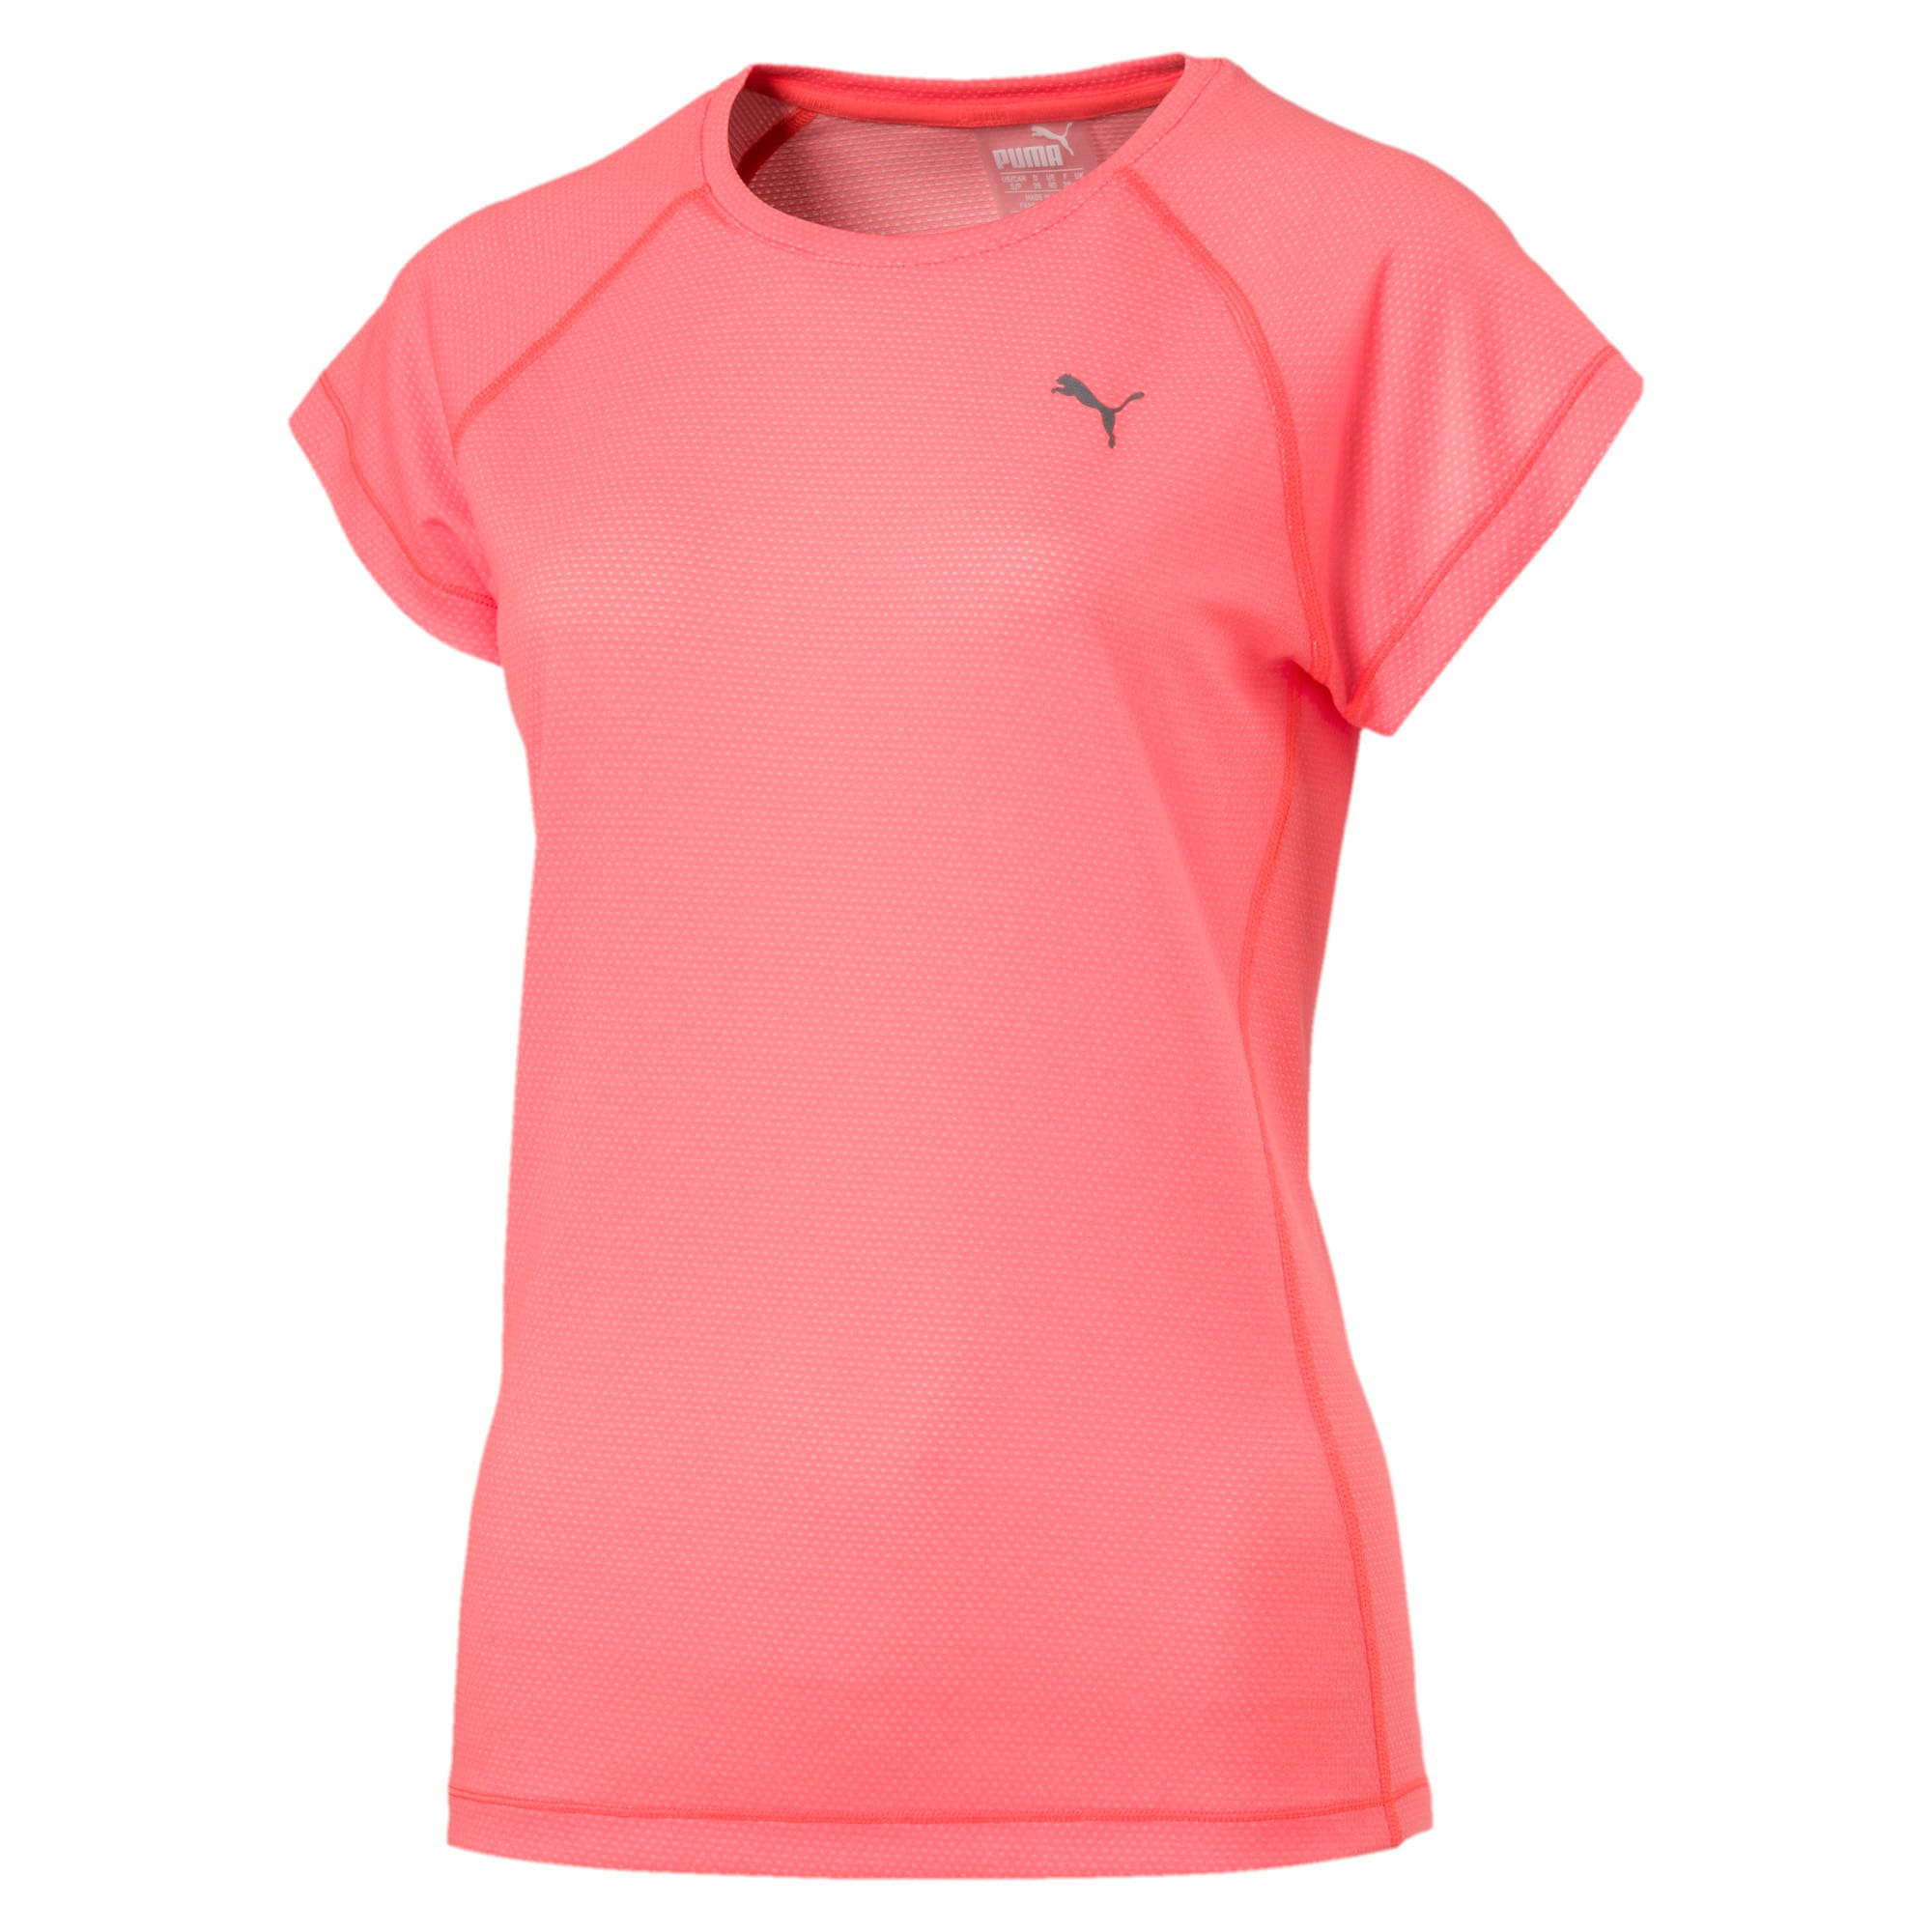 Thumbnail 4 of Running Women's Adapt Thermo-R T-Shirt, Nrgy Peach, medium-IND